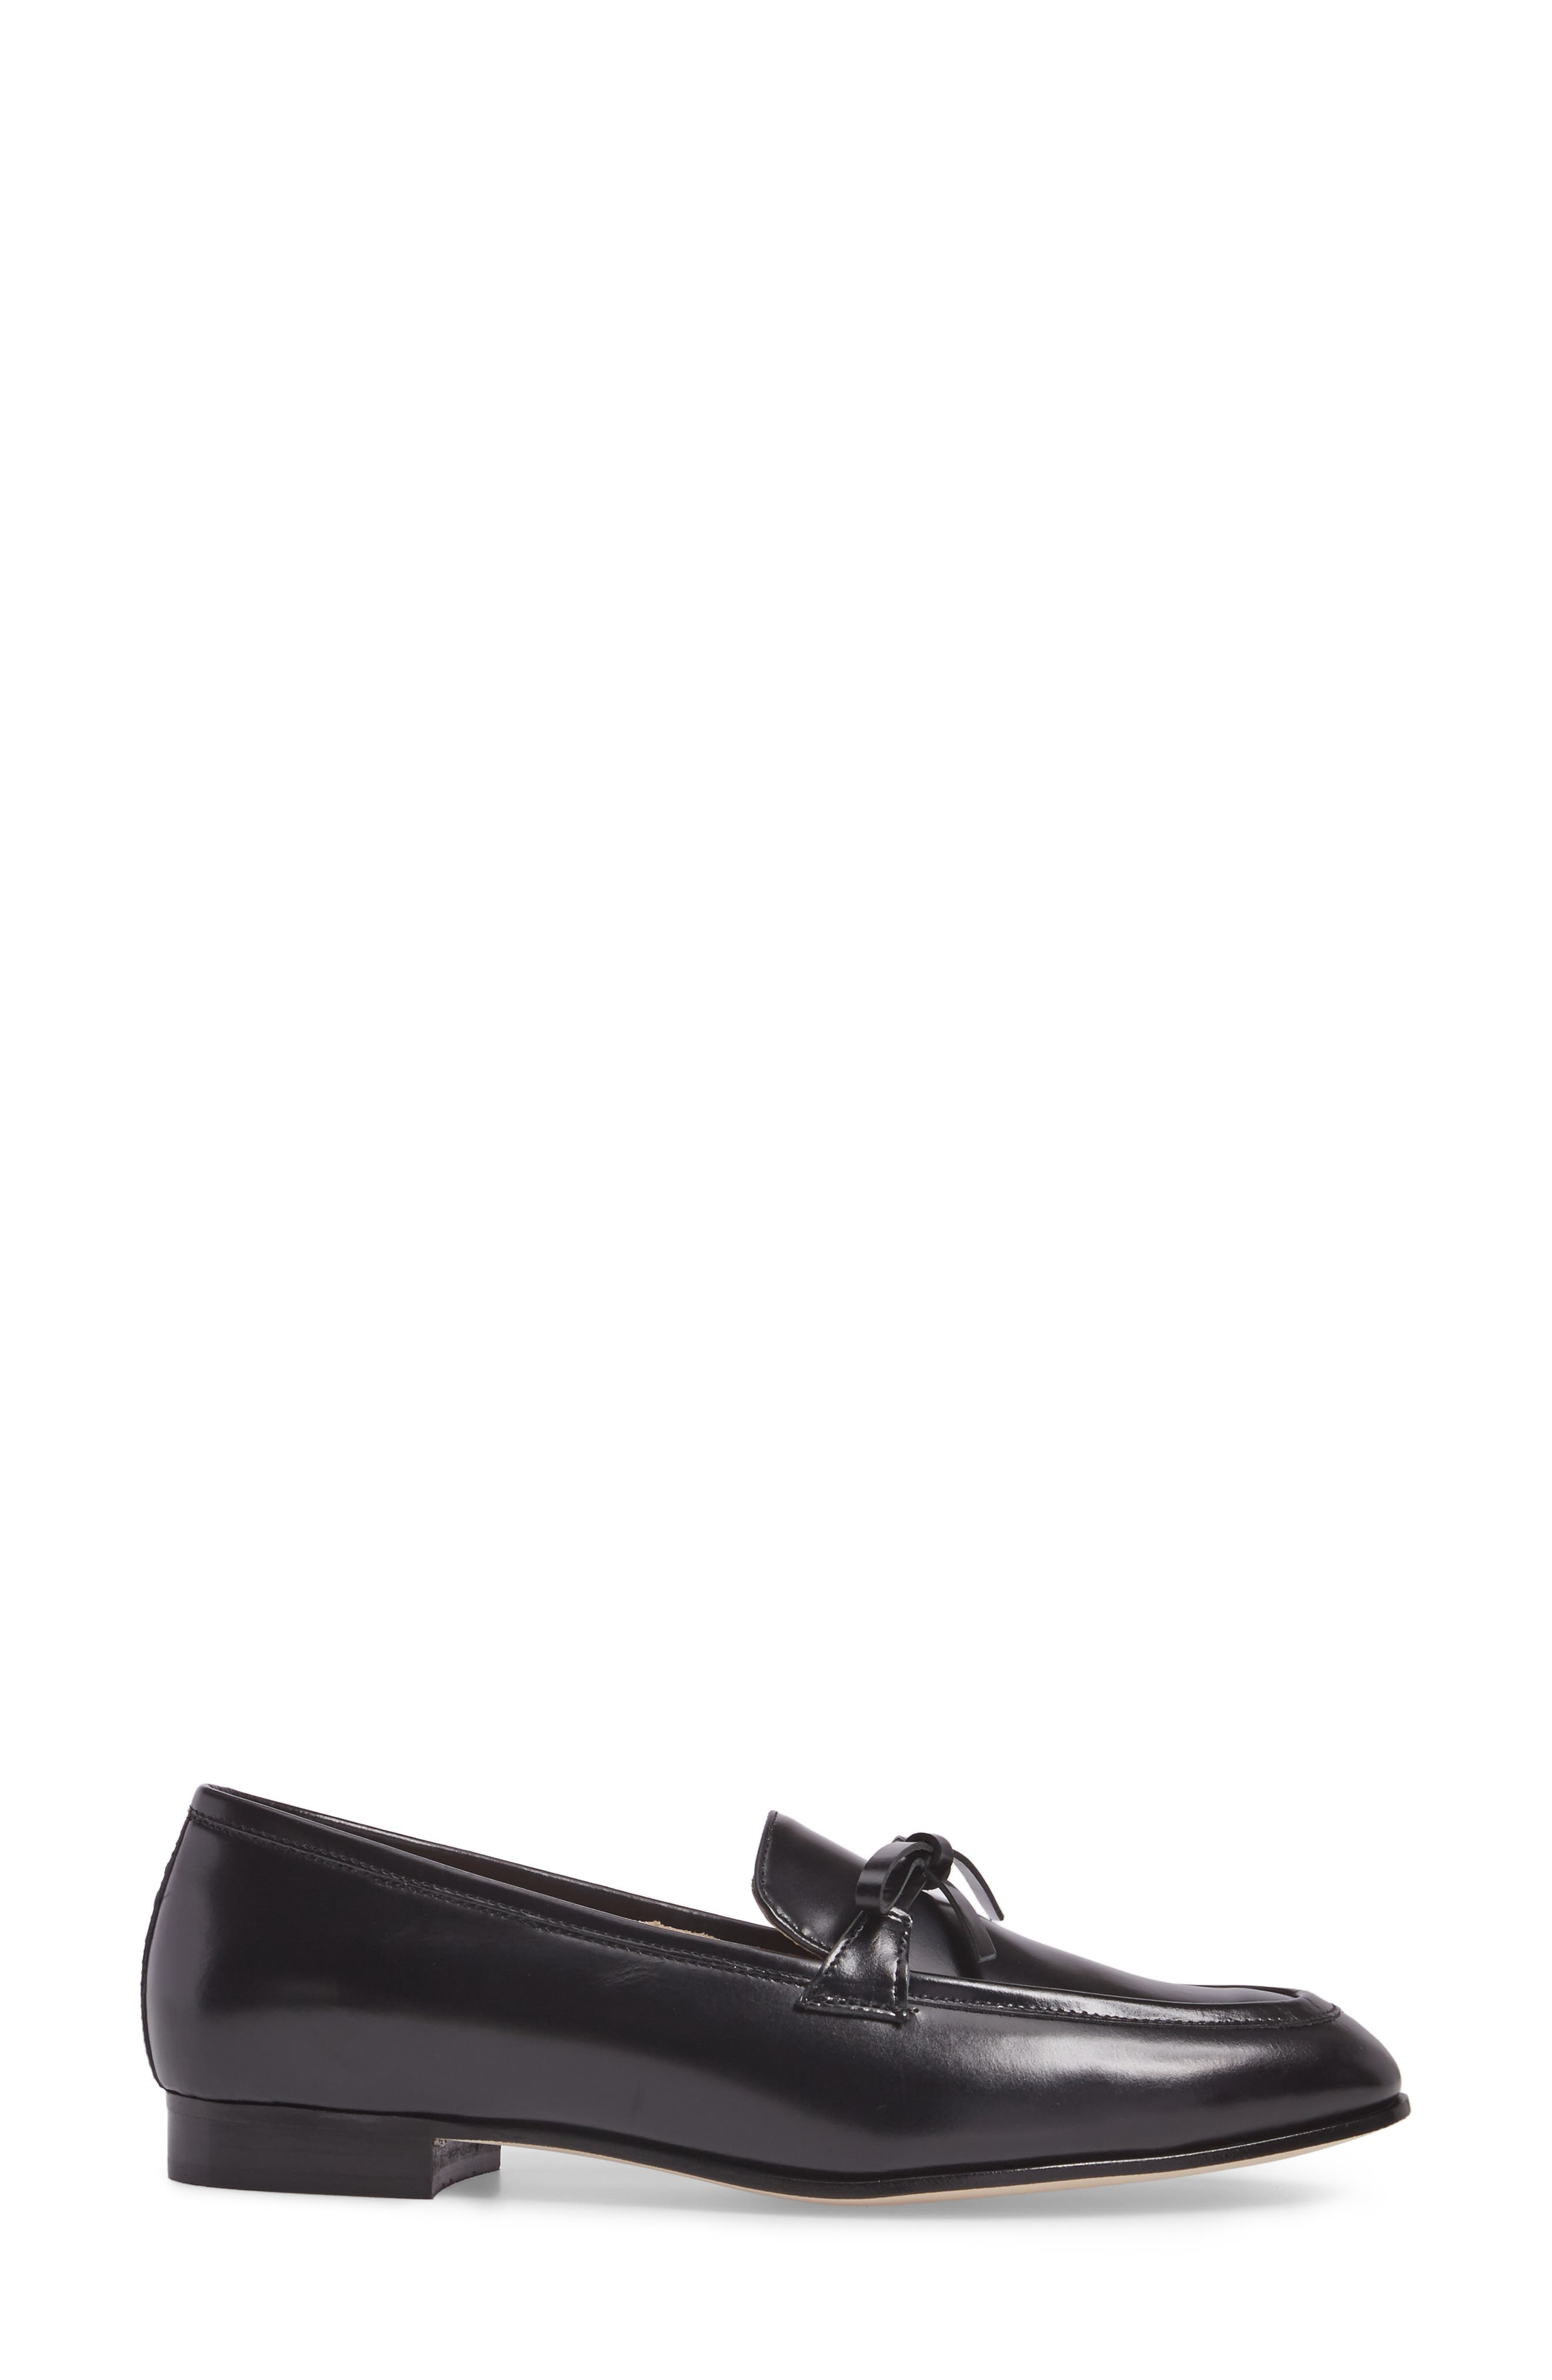 Bow Loafer,                             Alternate thumbnail 3, color,                             001